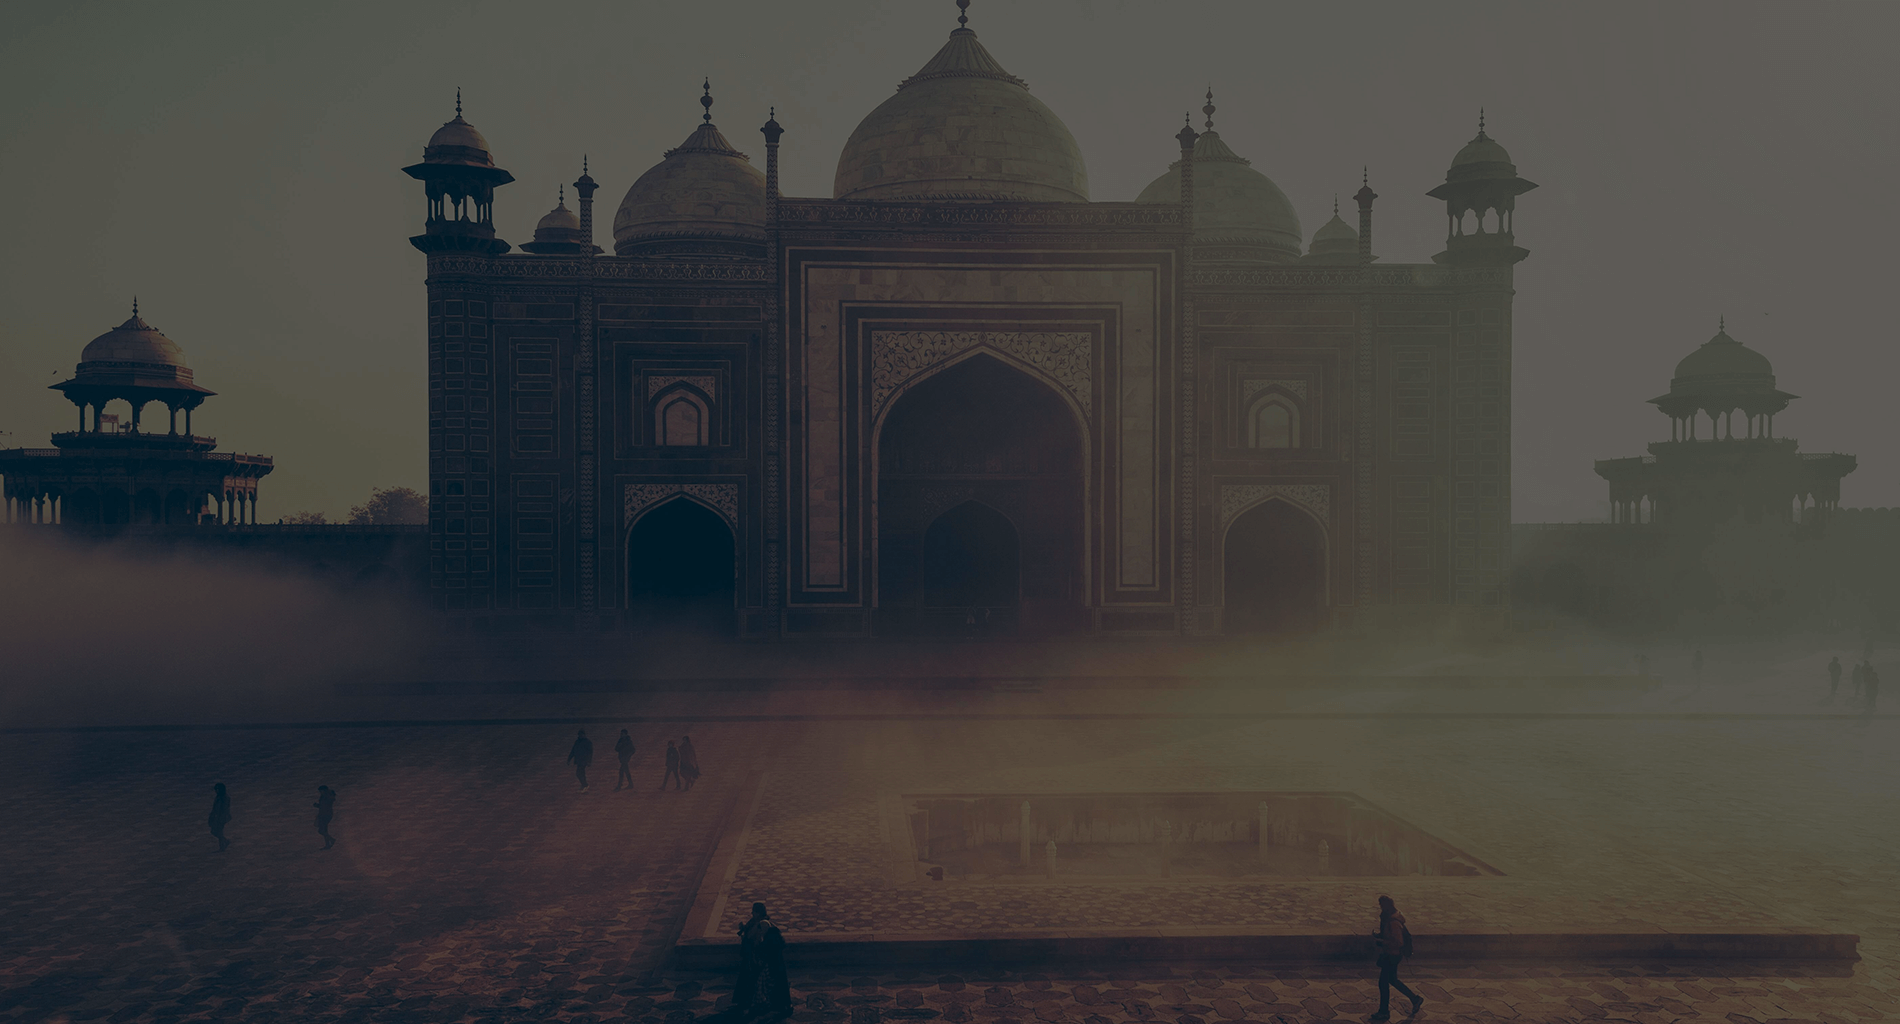 South Asia is Poised for Strong Growth in the Future